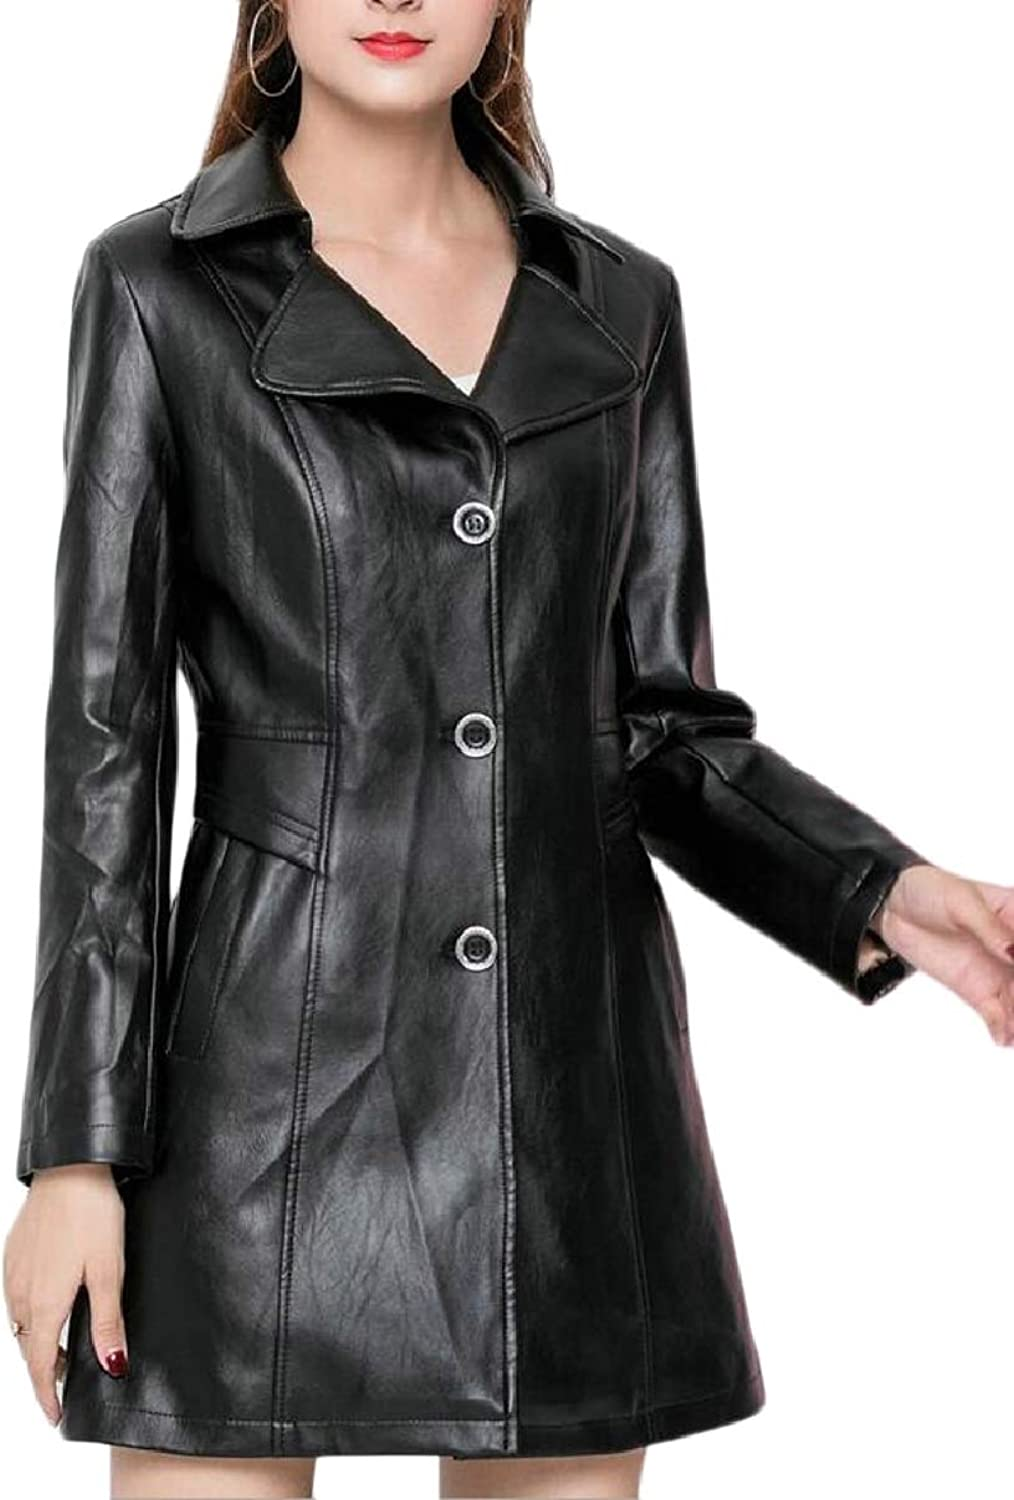 LEISHOP Womens Oversize Autumn Faux Leather Outwear Coat Jacket